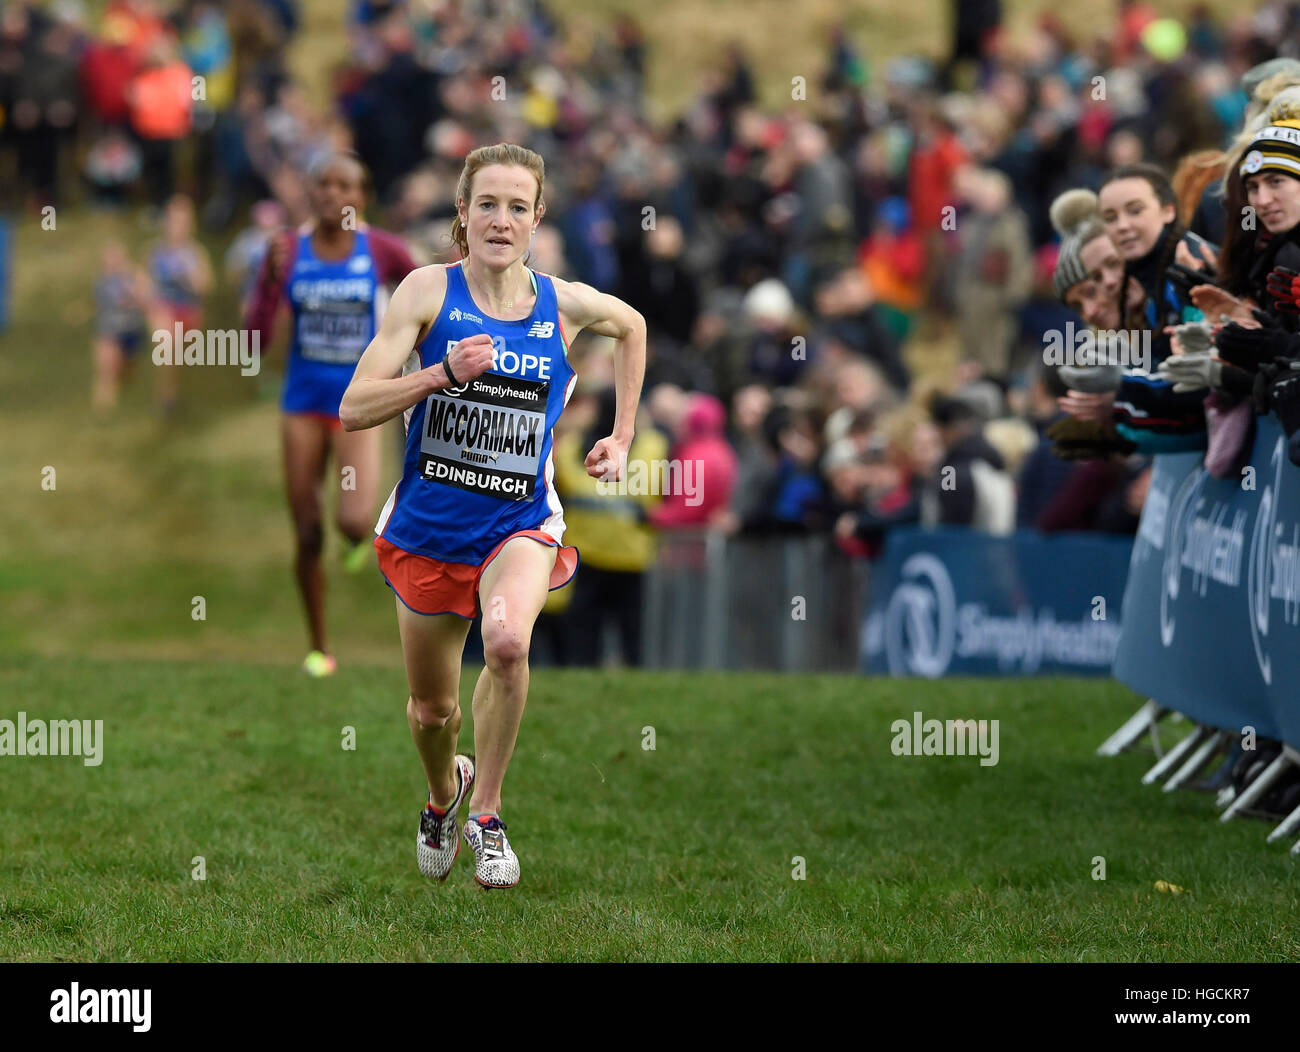 Europe's Fionnuala McCormack finishes second in the Women's 6k event during the 2017 Great Edinburgh International - Stock Image